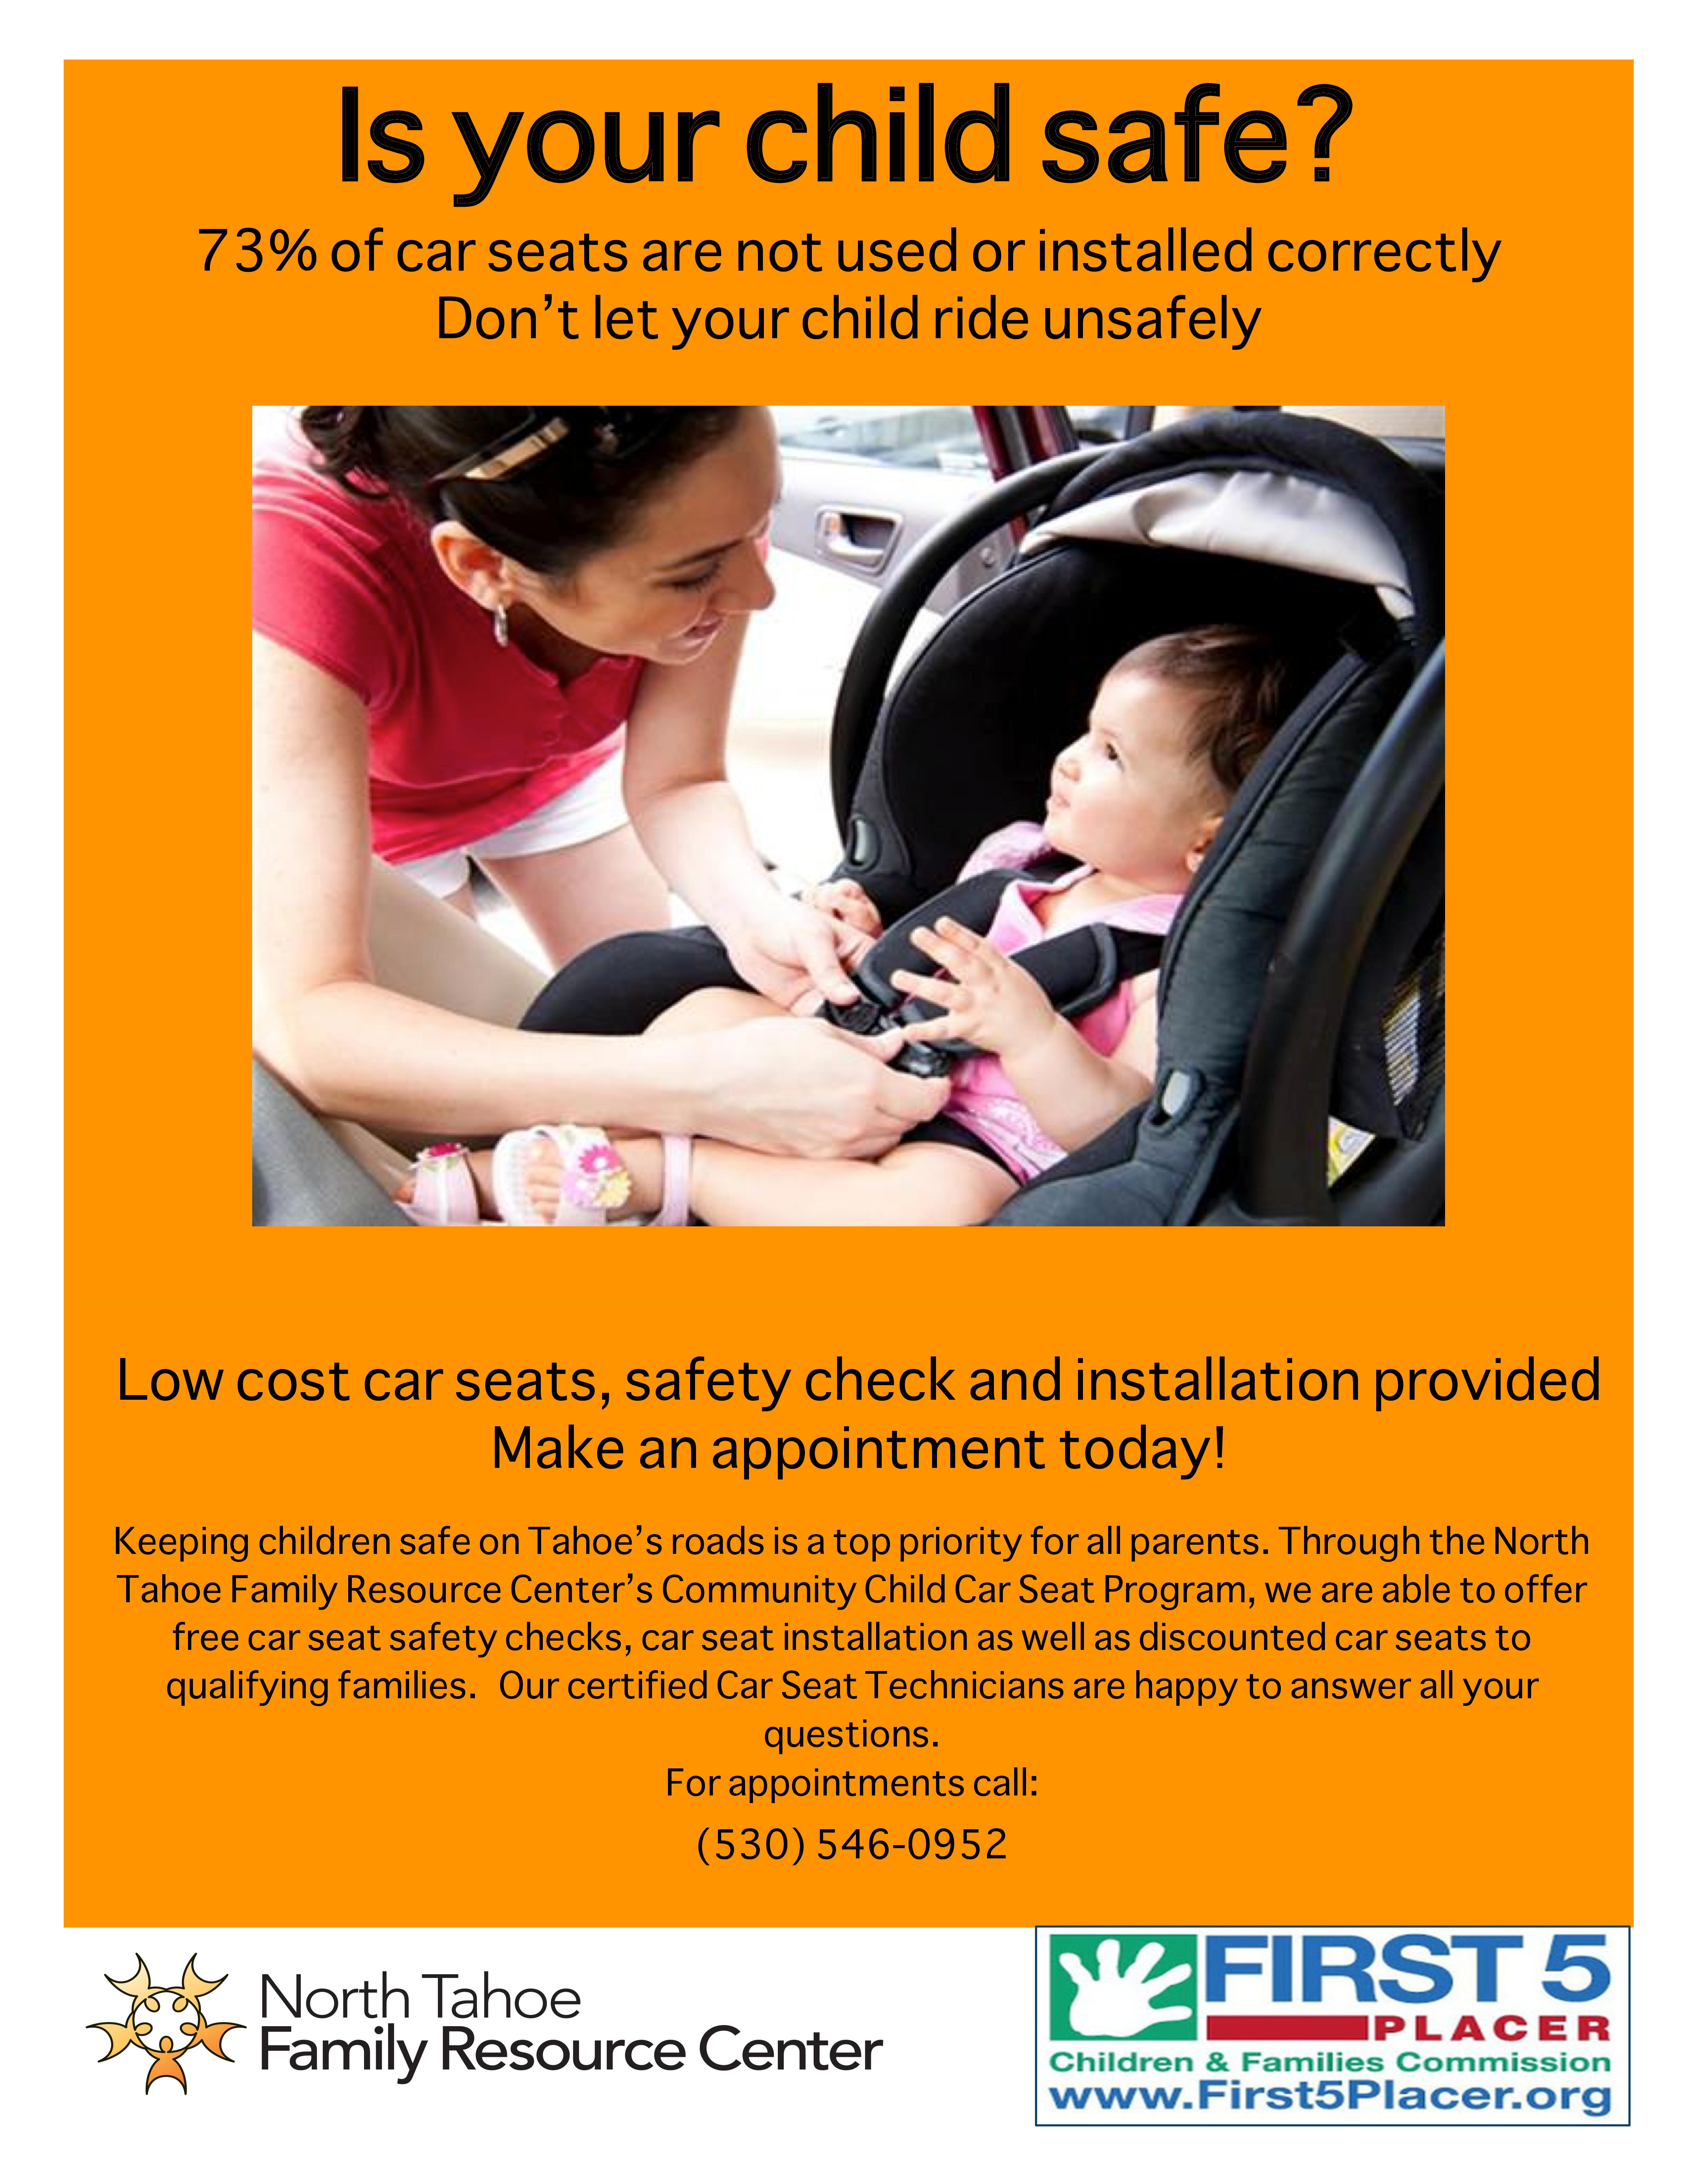 The Car Seat Program Provides Parents With Free Seats As Well Guided Instructions For Their Installation And Use